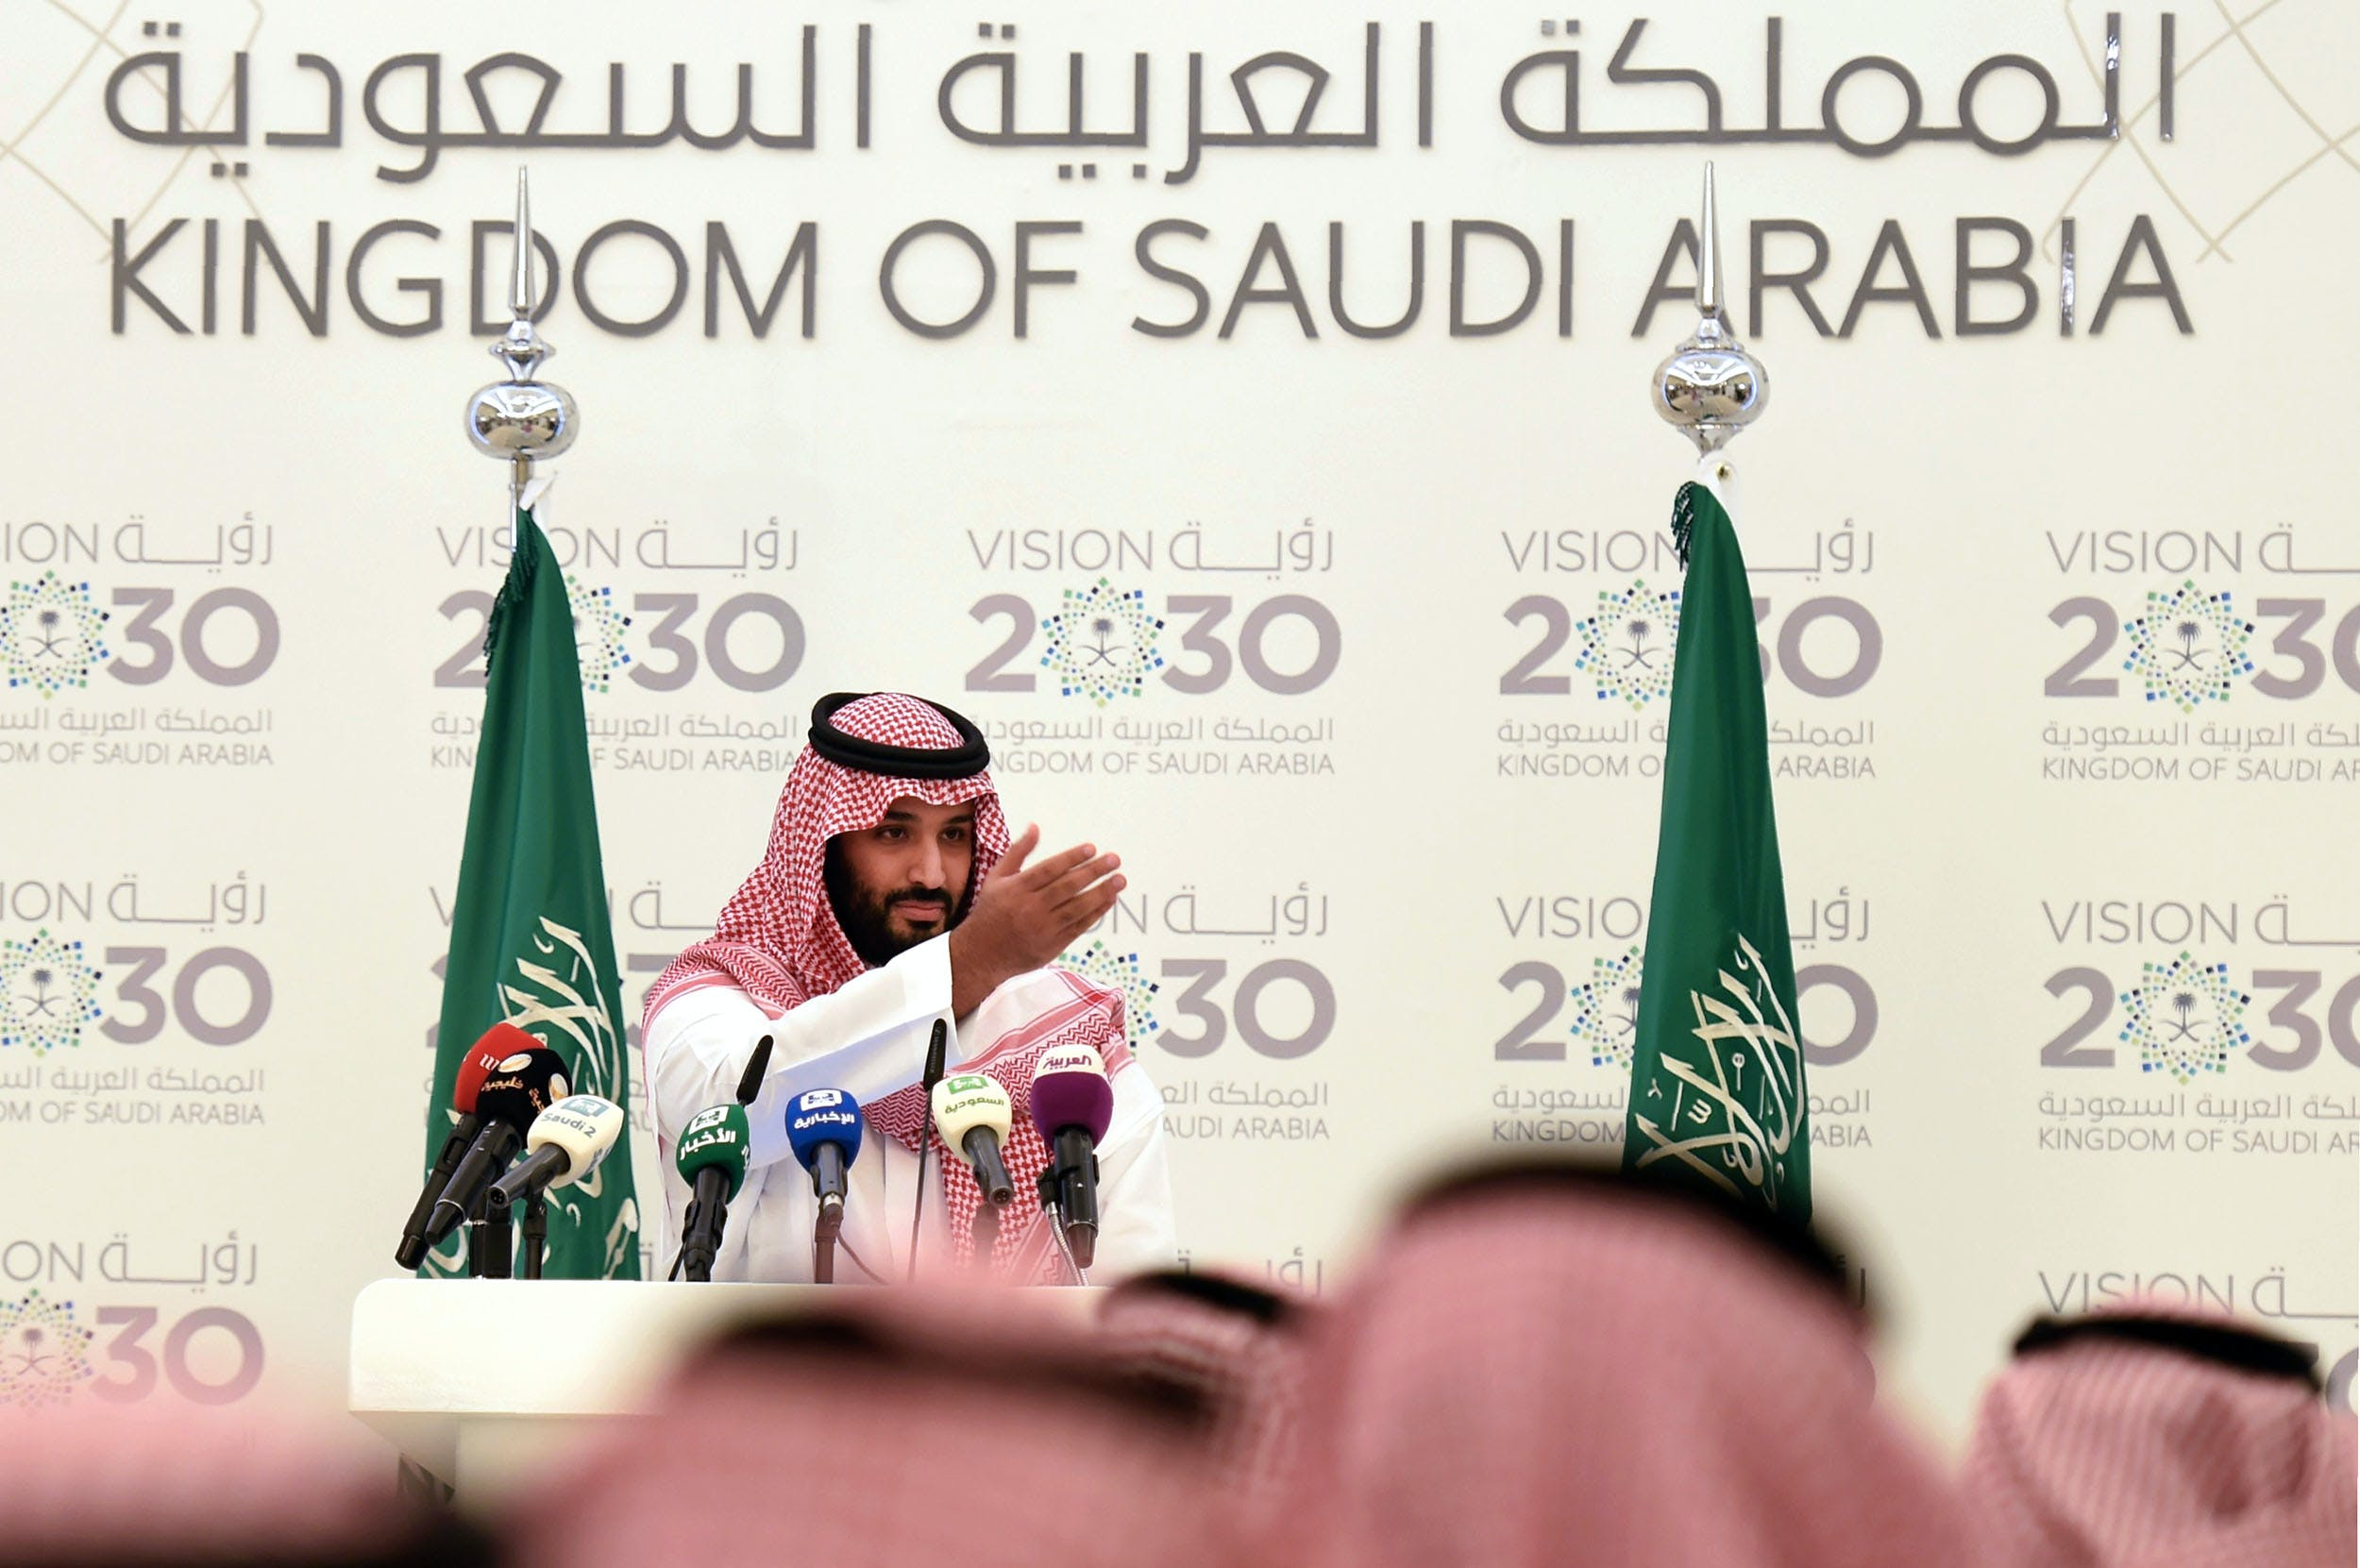 """Saudi Defense Minister and Deputy Crown Prince Mohammed bin Salman gives a press conference in Riyadh, on April 25, 2016.<br /> The key figure behind the unveiling of a vast plan to restructure the kingdom's oil-dependent economy, the son of King Salman has risen to among Saudi Arabia's most influential figures since being named second-in-line to the throne in 2015. Salman announced his economic reform plan known as """"Vision 2030"""".<br />  / AFP / FAYEZ NURELDINE        (Photo credit should read FAYEZ NURELDINE/AFP/Getty Images)"""